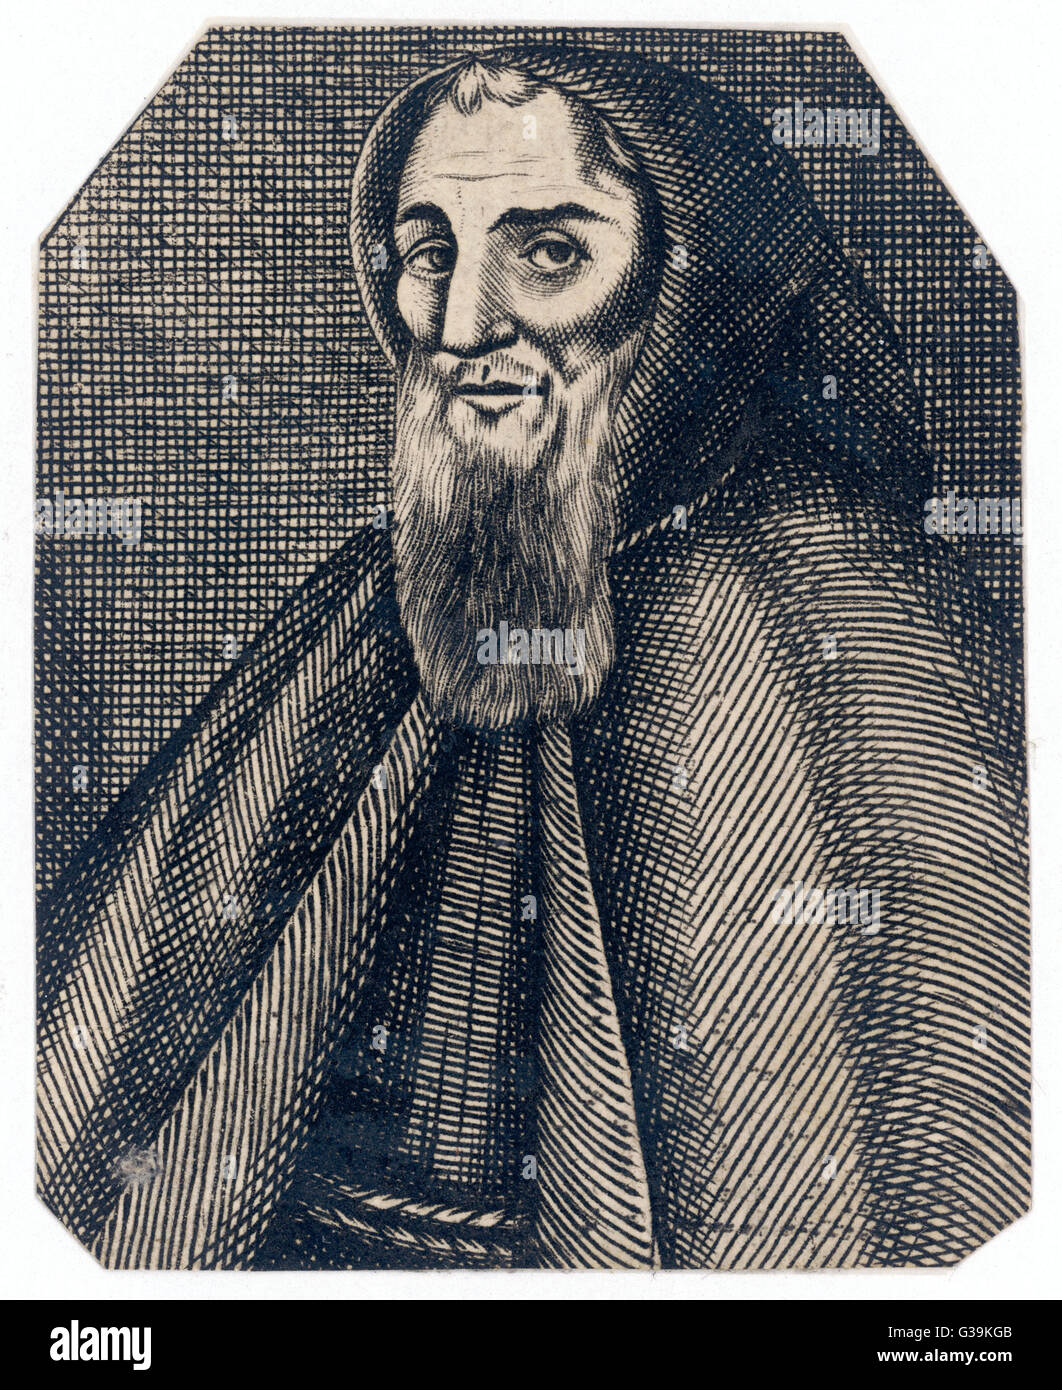 GEOFFREY CHAUCER (1340 - 1400) English poet, writer of  The Canterbury Tales - Stock Image